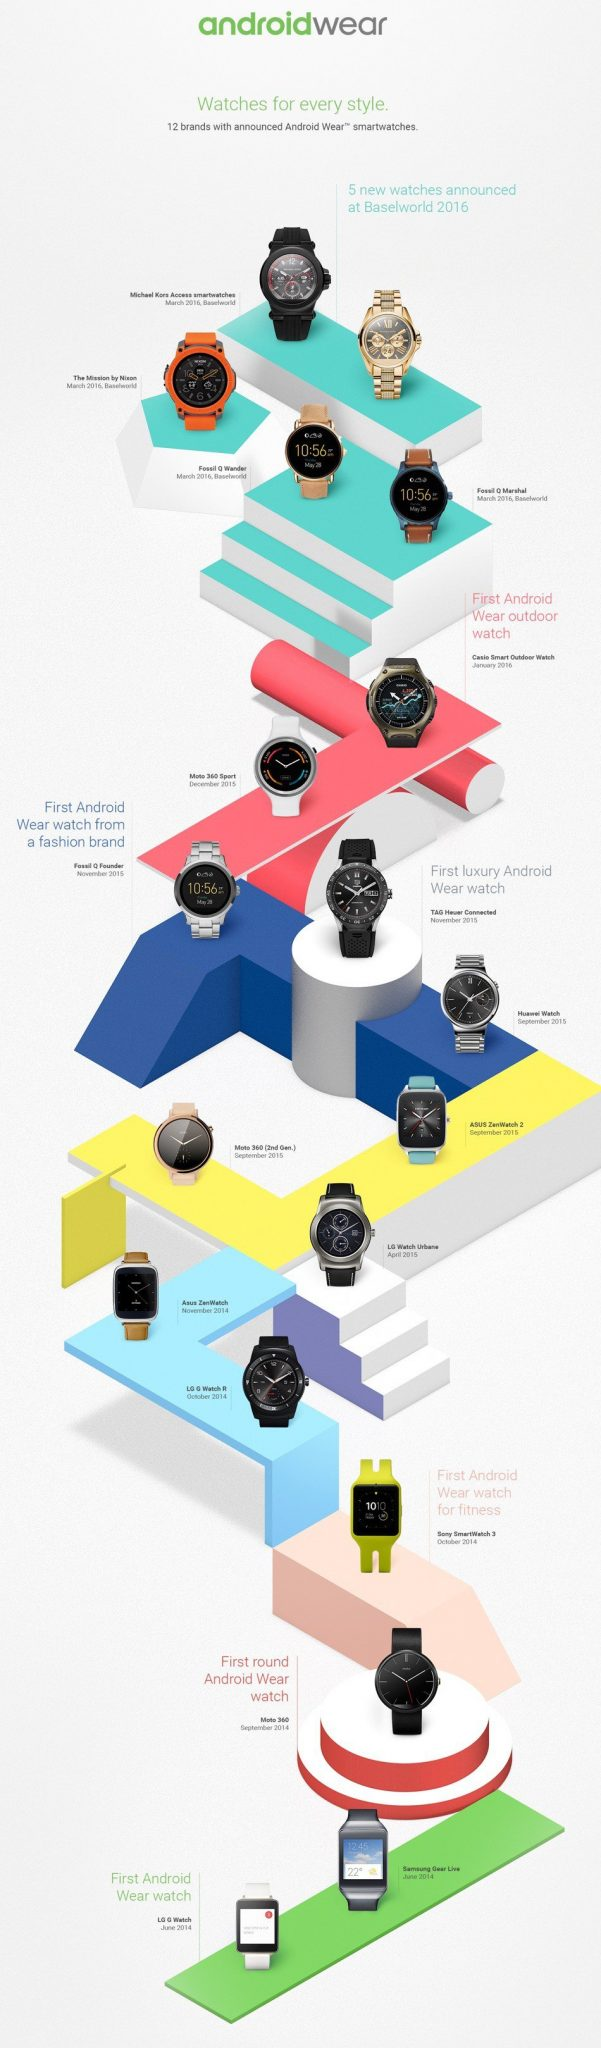 AndroidWear Timeline History